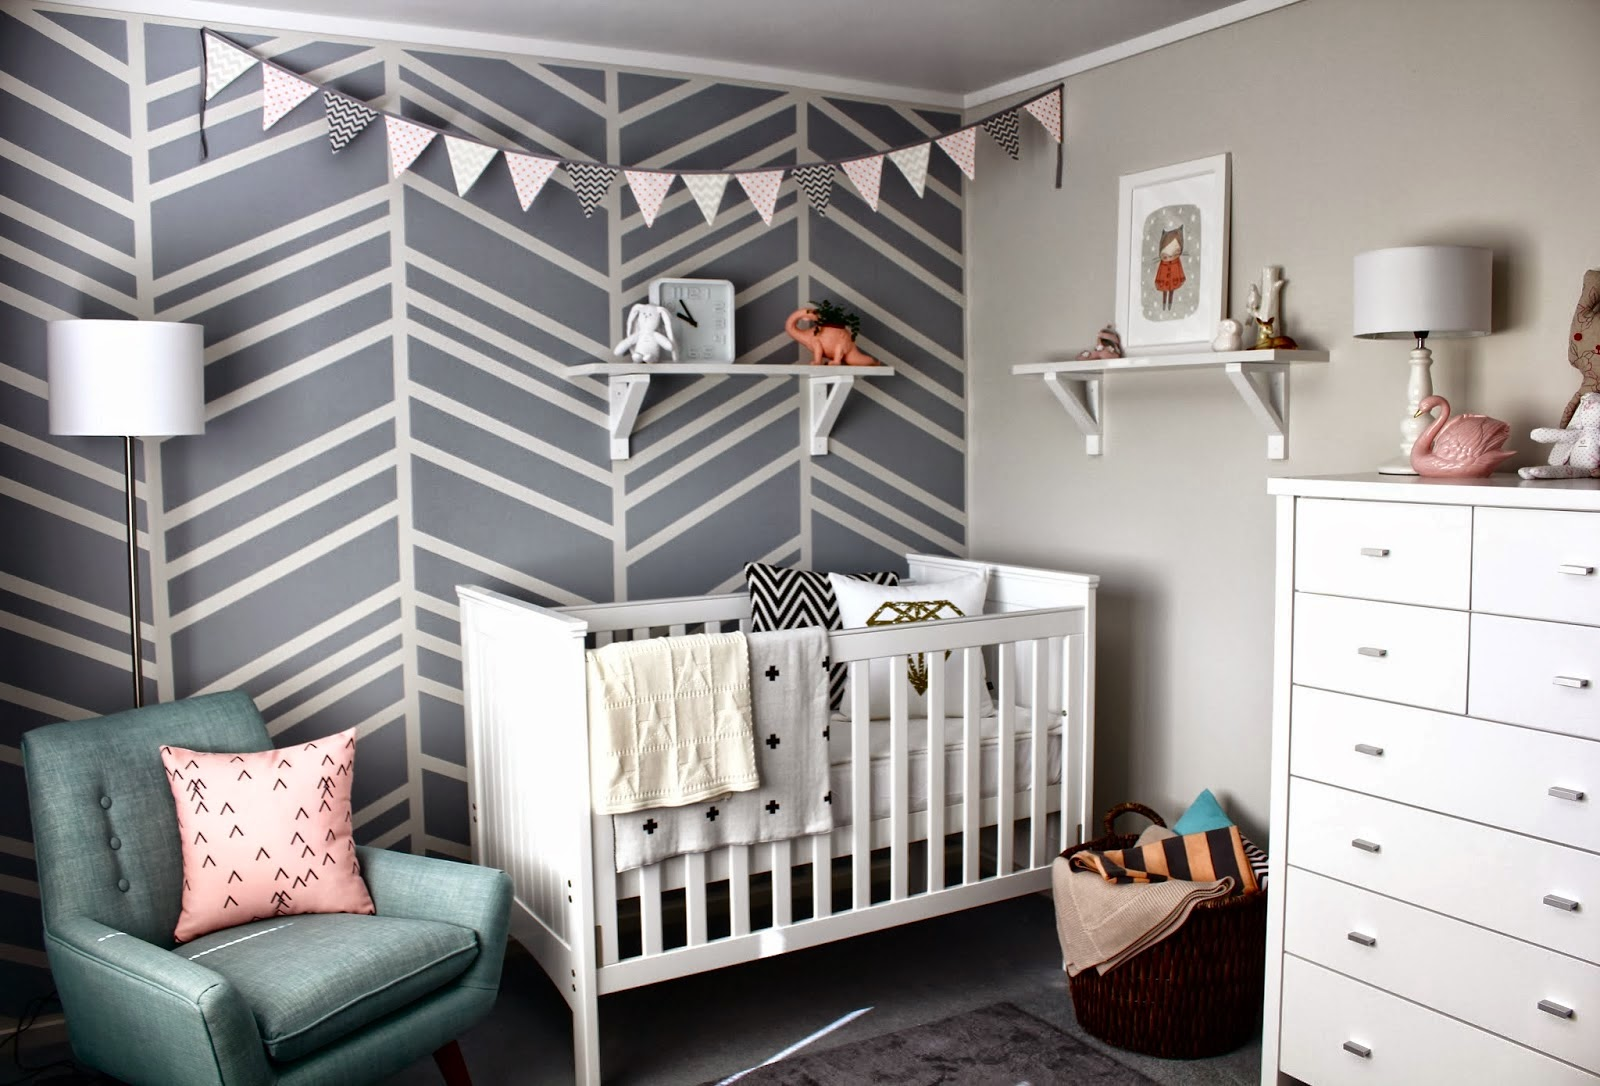 Cot Bed: Farmers (New Zealand) Chevron Cushion In Cot: Witchery (Australia)  Diamond Cushion In Cot: Lorna Love Shelves: Bunnings Warehouse (New Zealand)